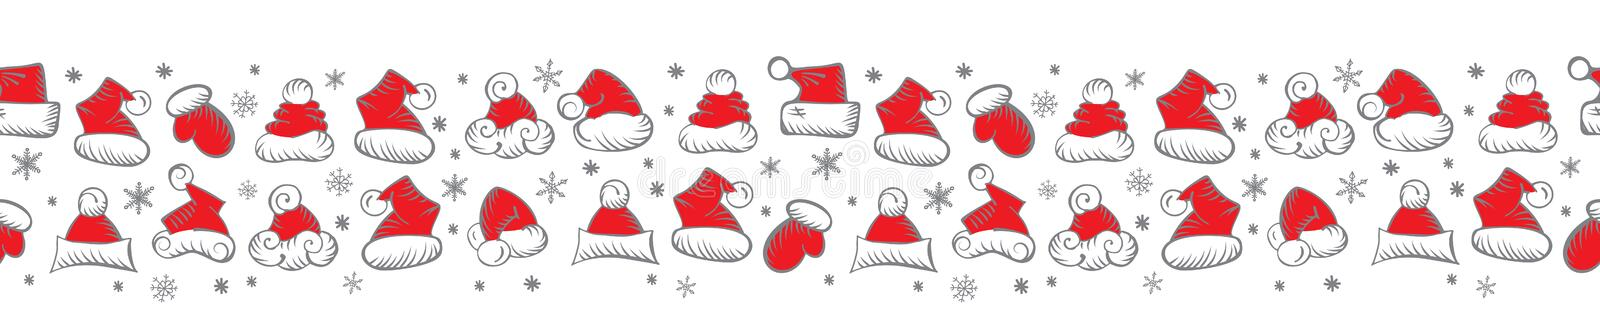 Santa Claus Hats Christmas Seamless Pattern for Holiday Packaging royalty free illustration